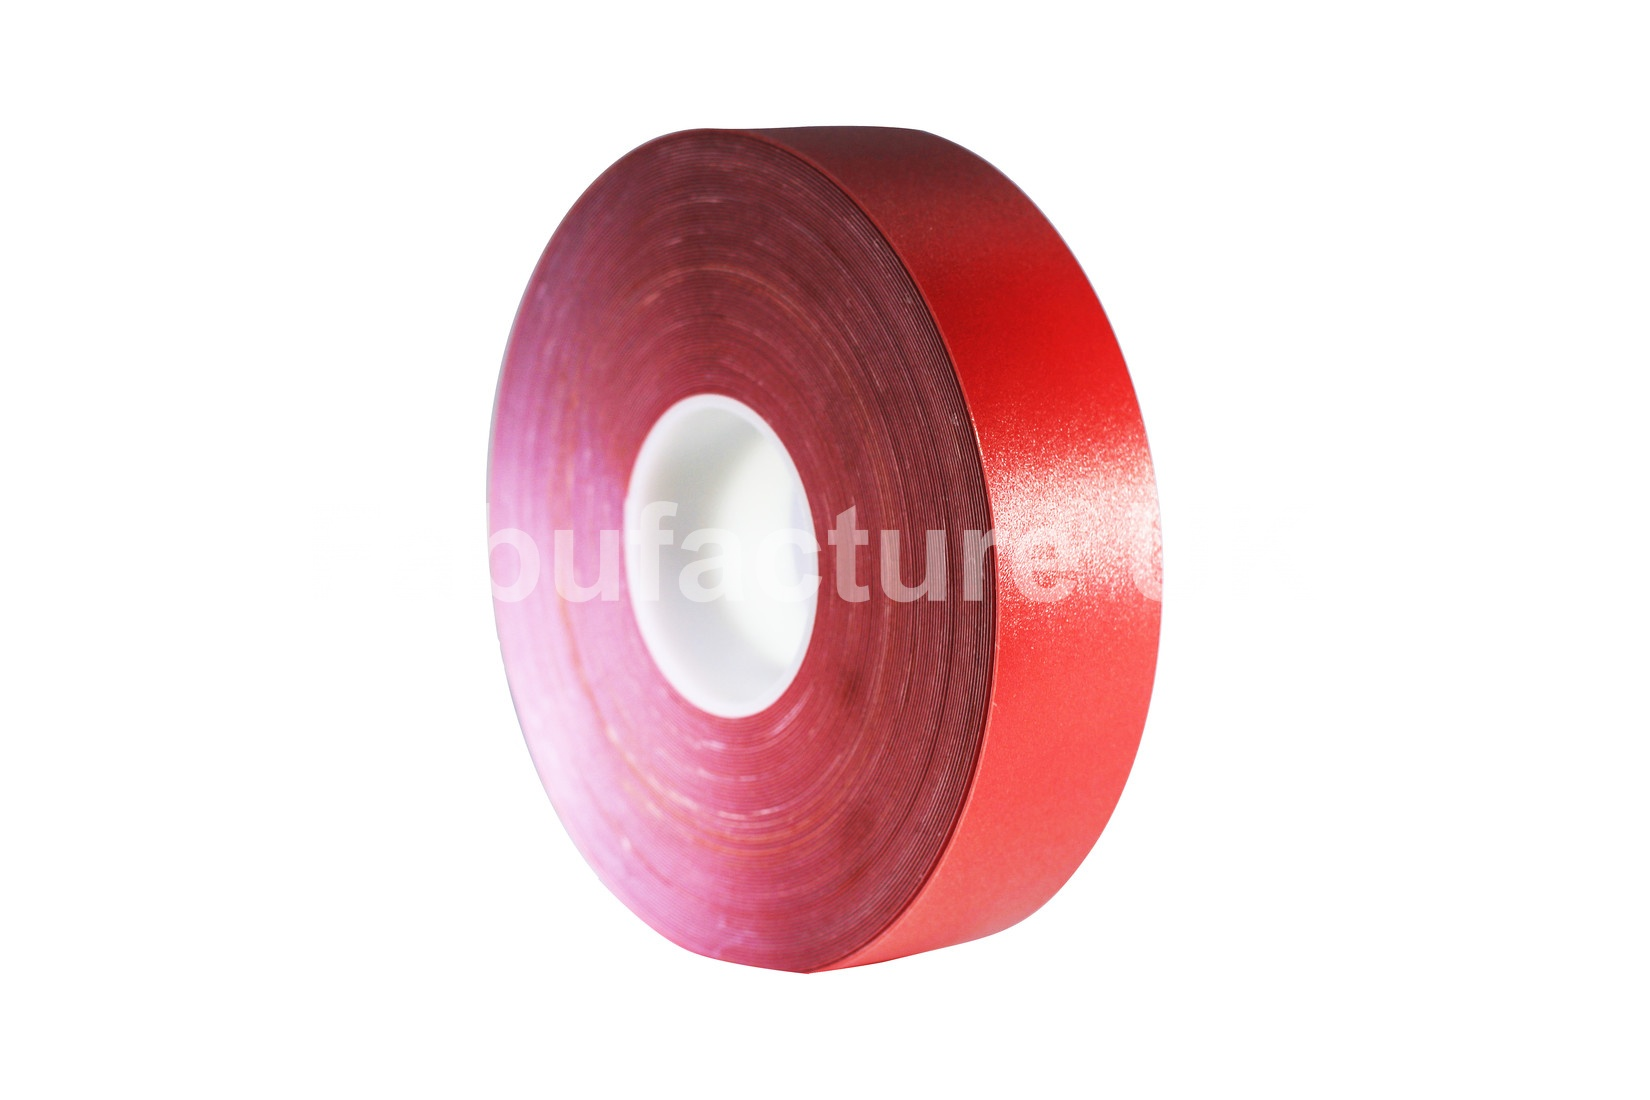 Heavy Duty Aisle Floor Marking Tape Sku 7361 The Lean